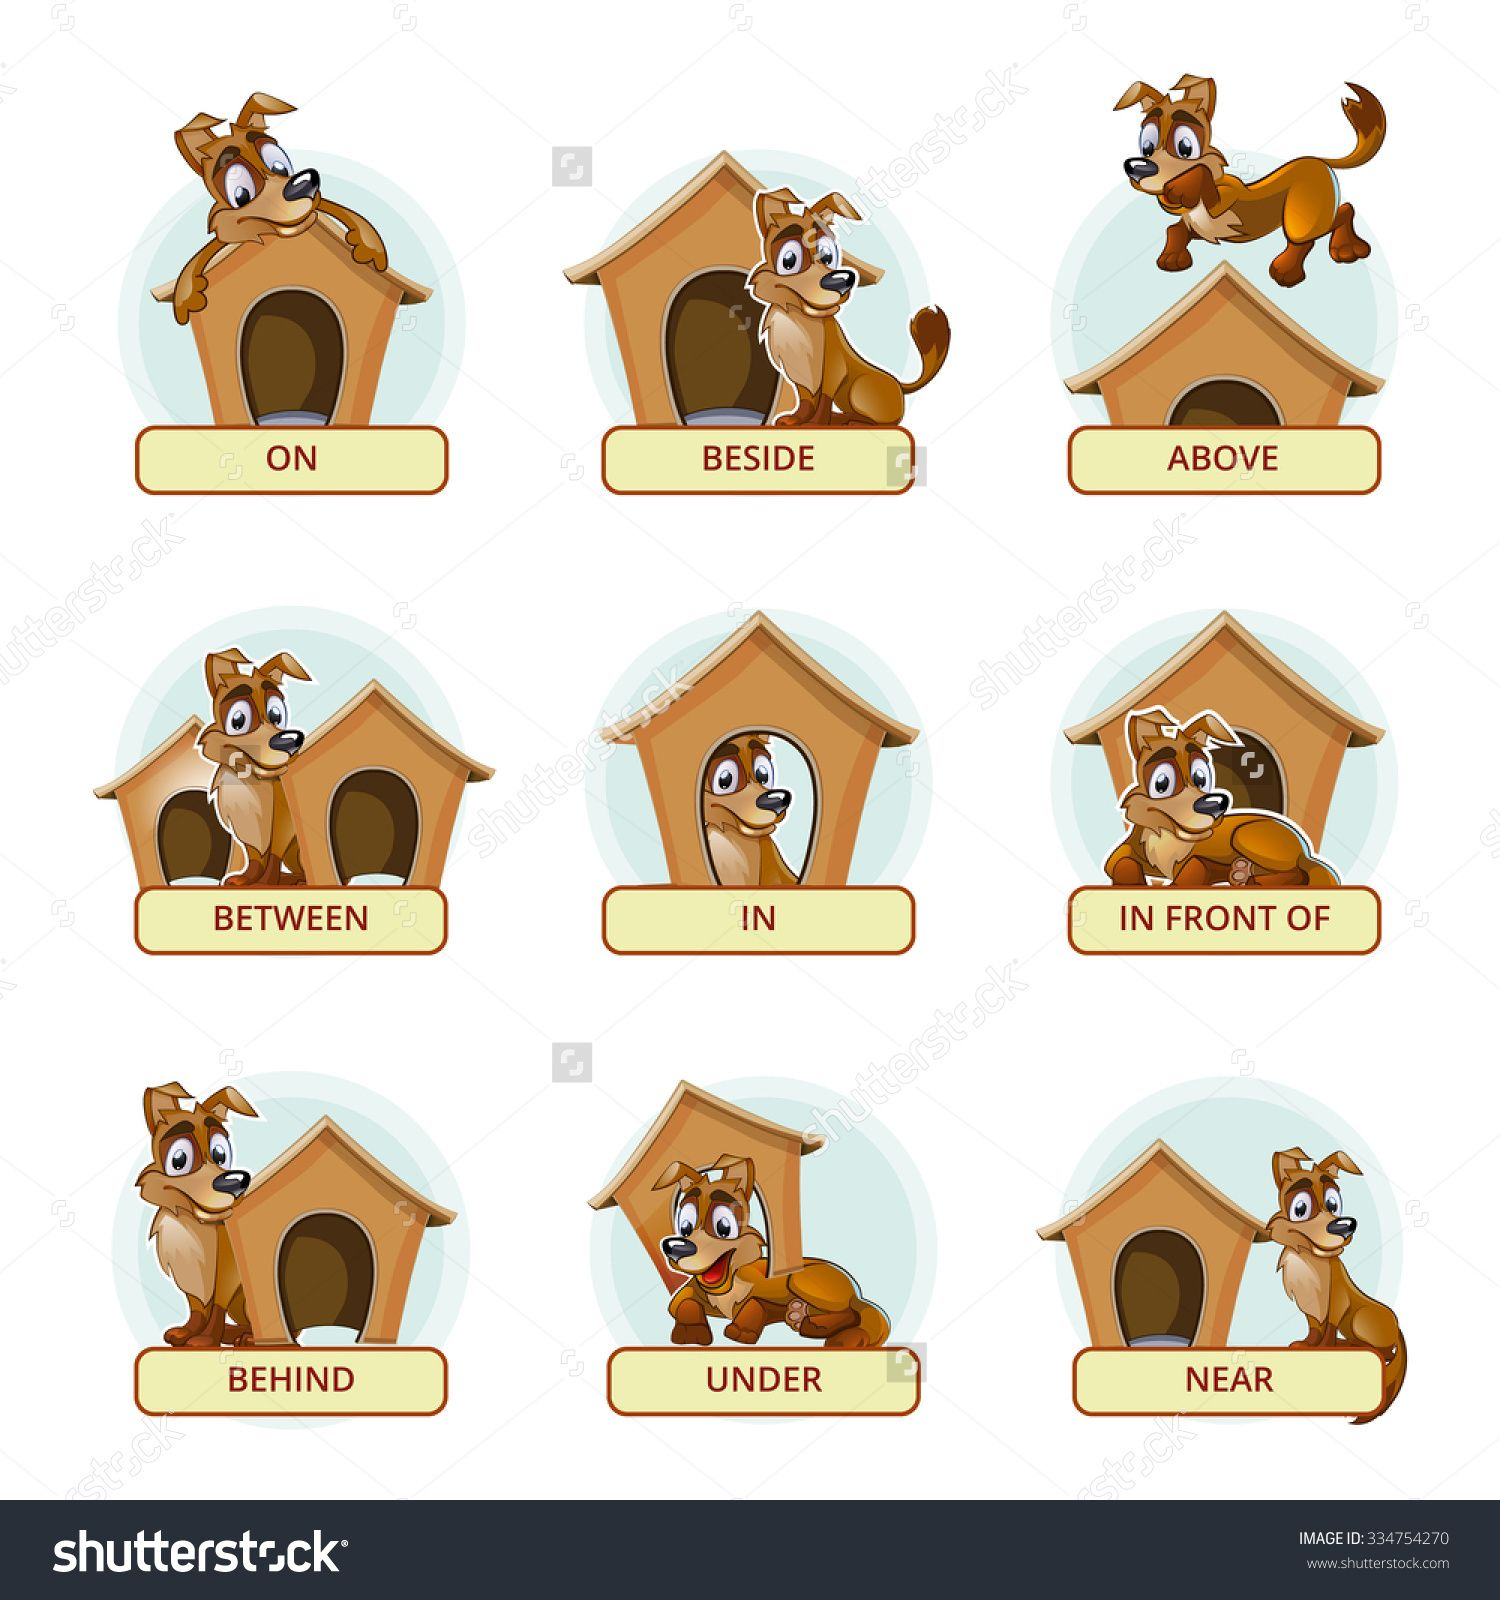 Pin About English Prepositions On English